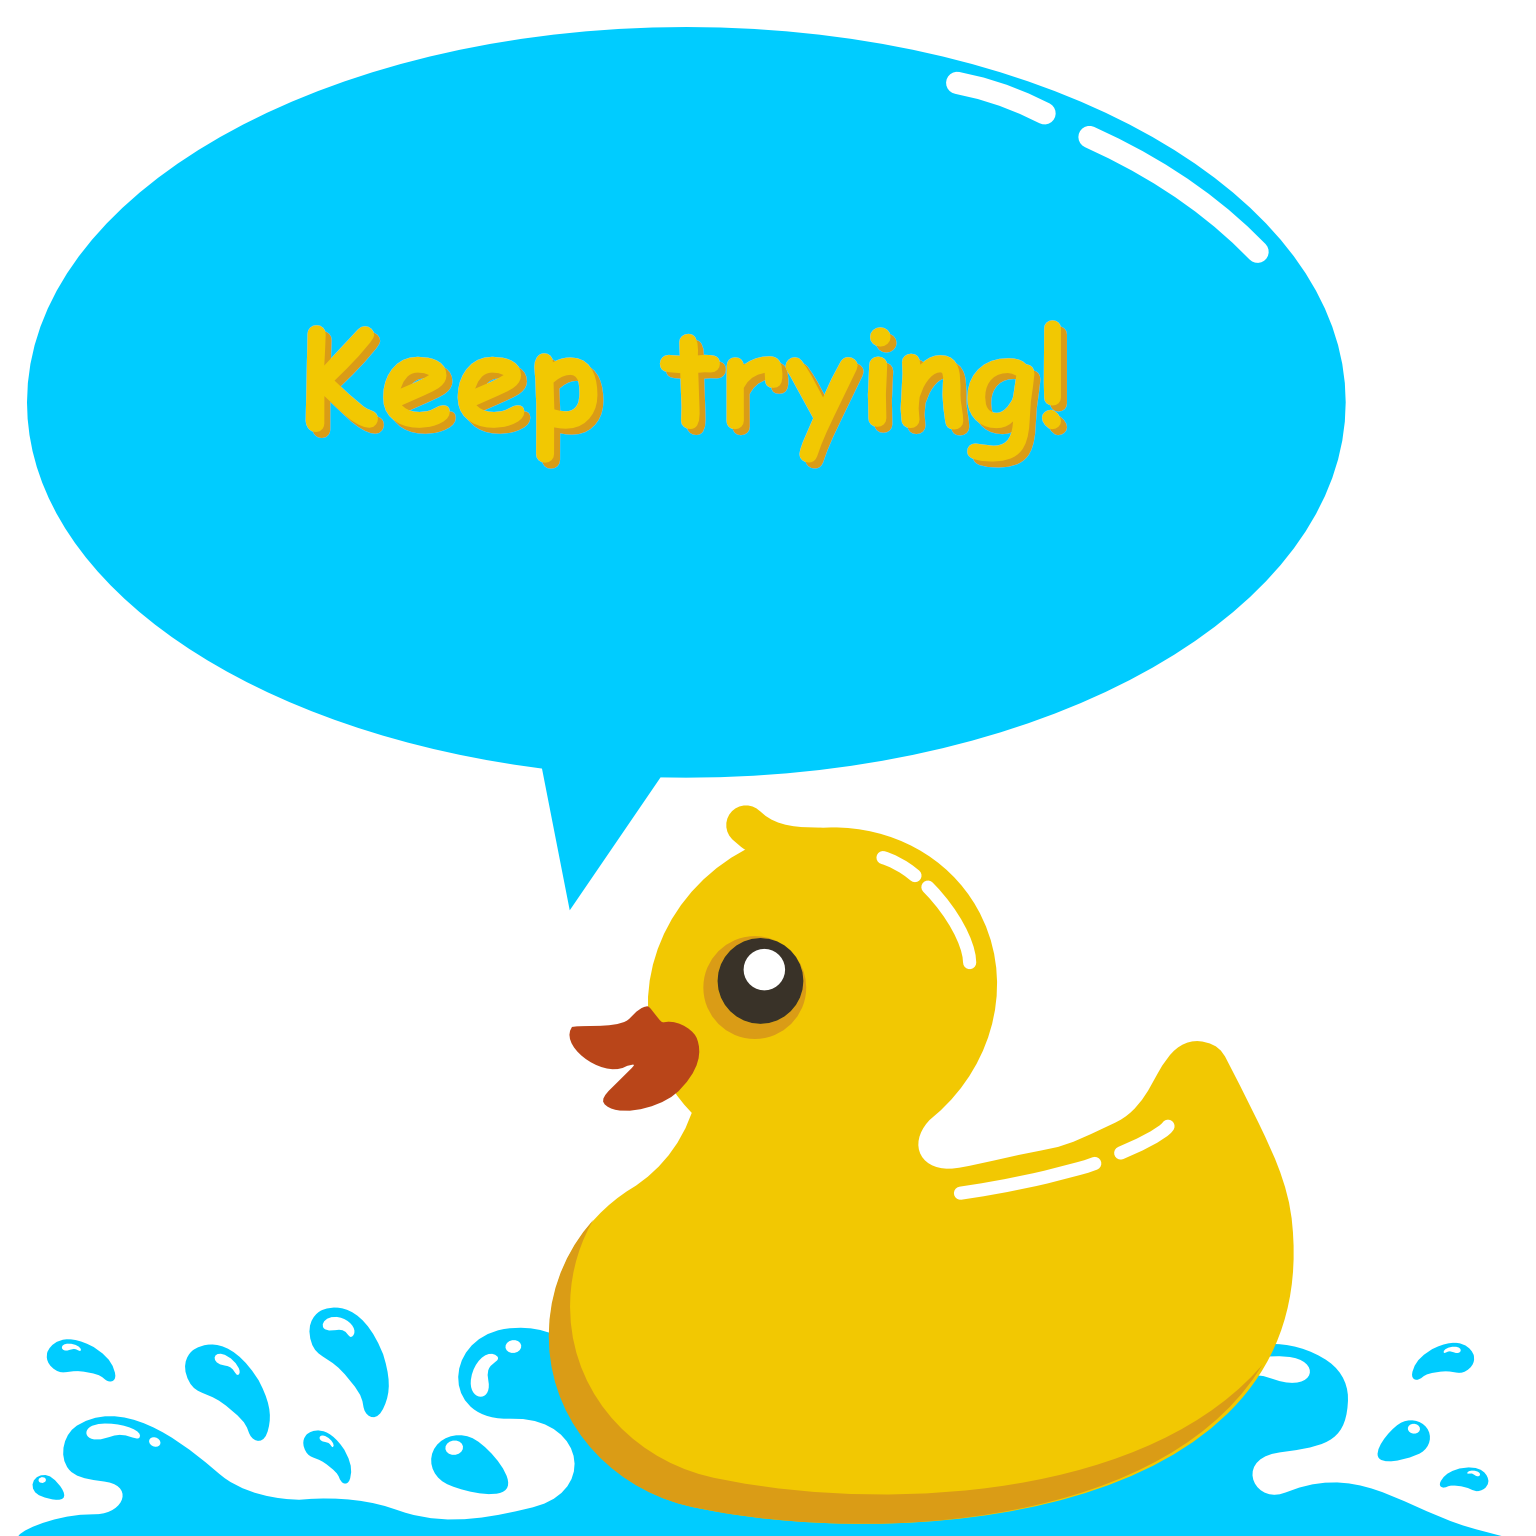 Daily Rubber Ducking messages sticker-5